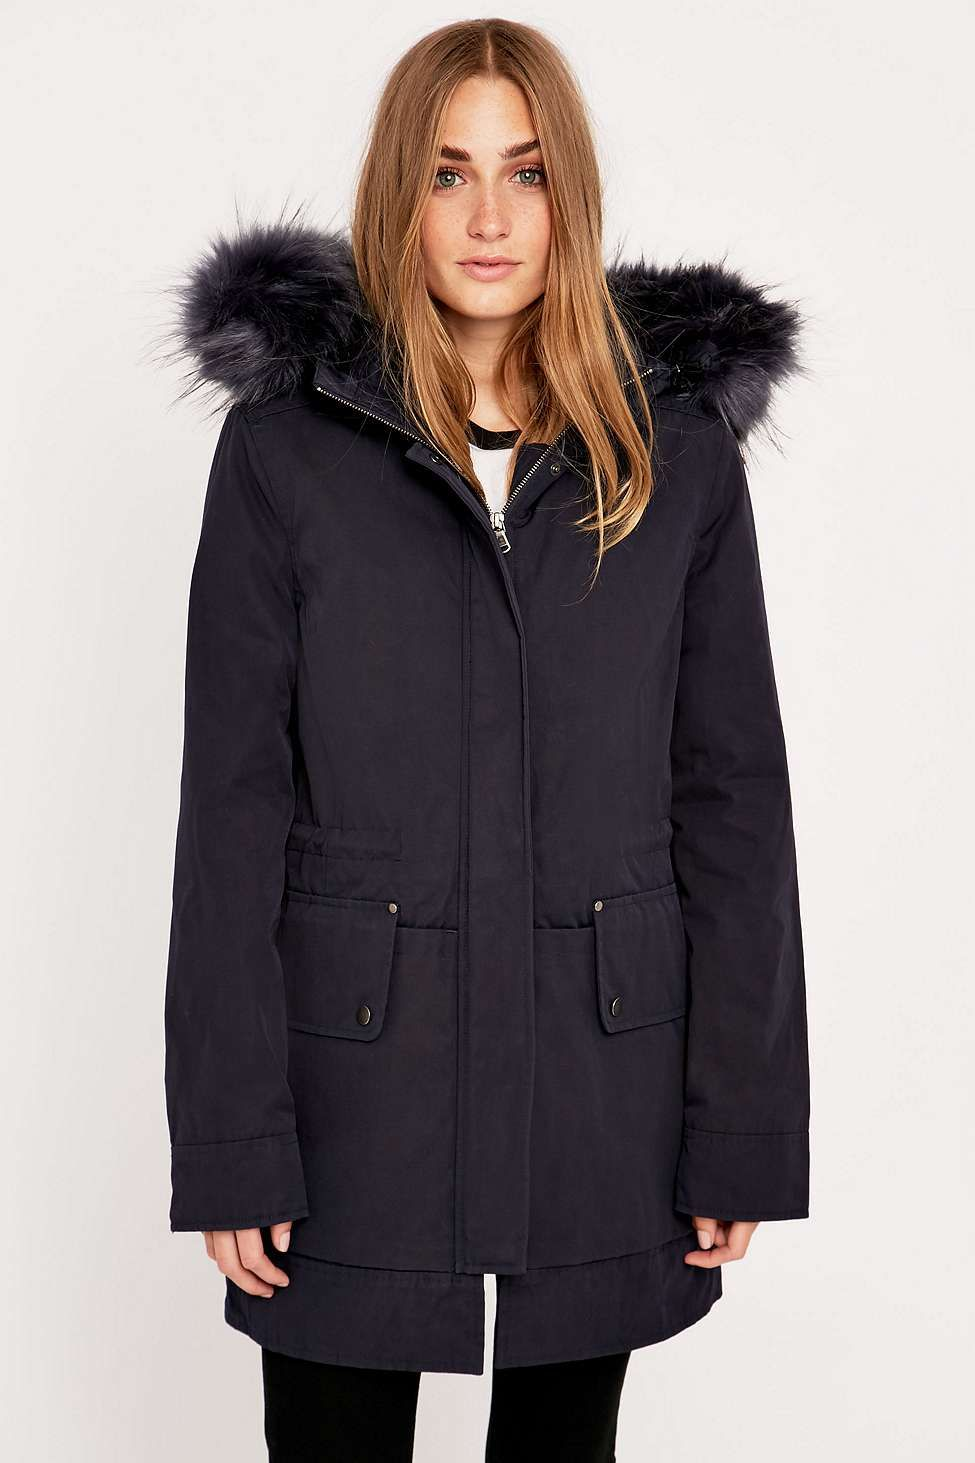 10  images about Coats on Pinterest | Coats Parkas and London